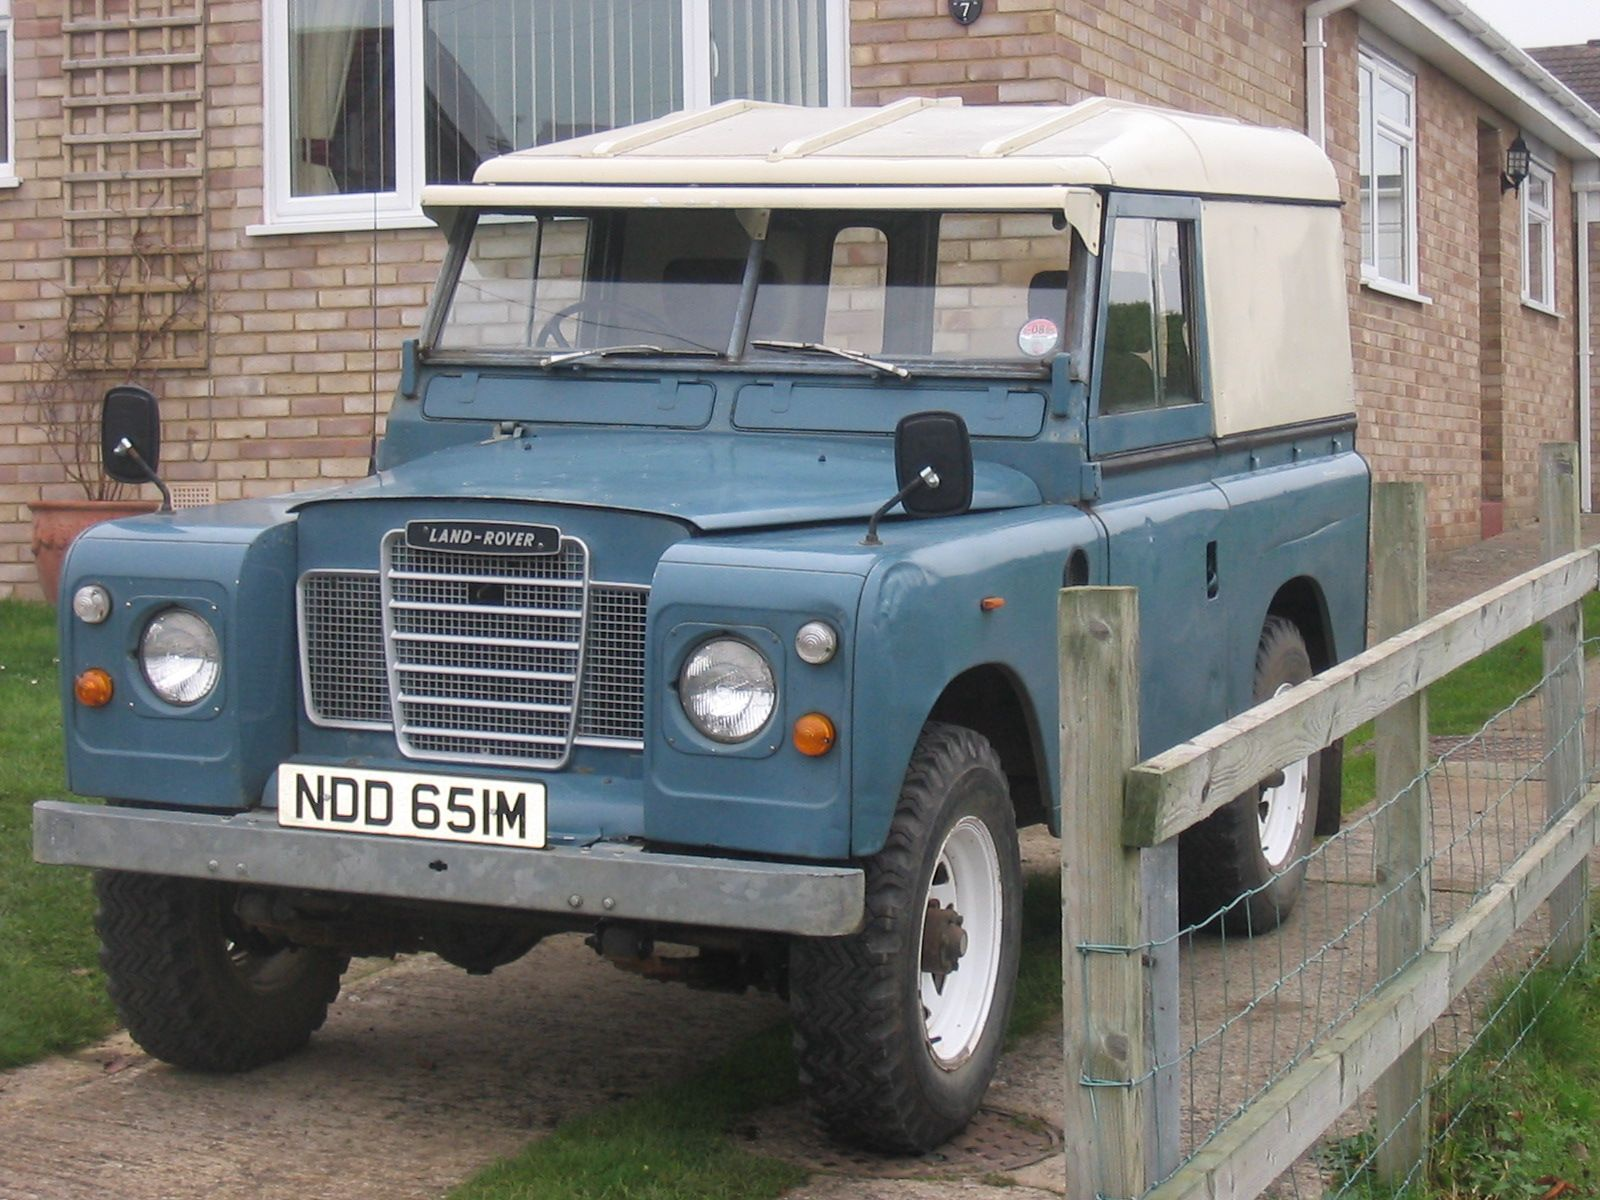 Anyone here ever owned an old Land Rover